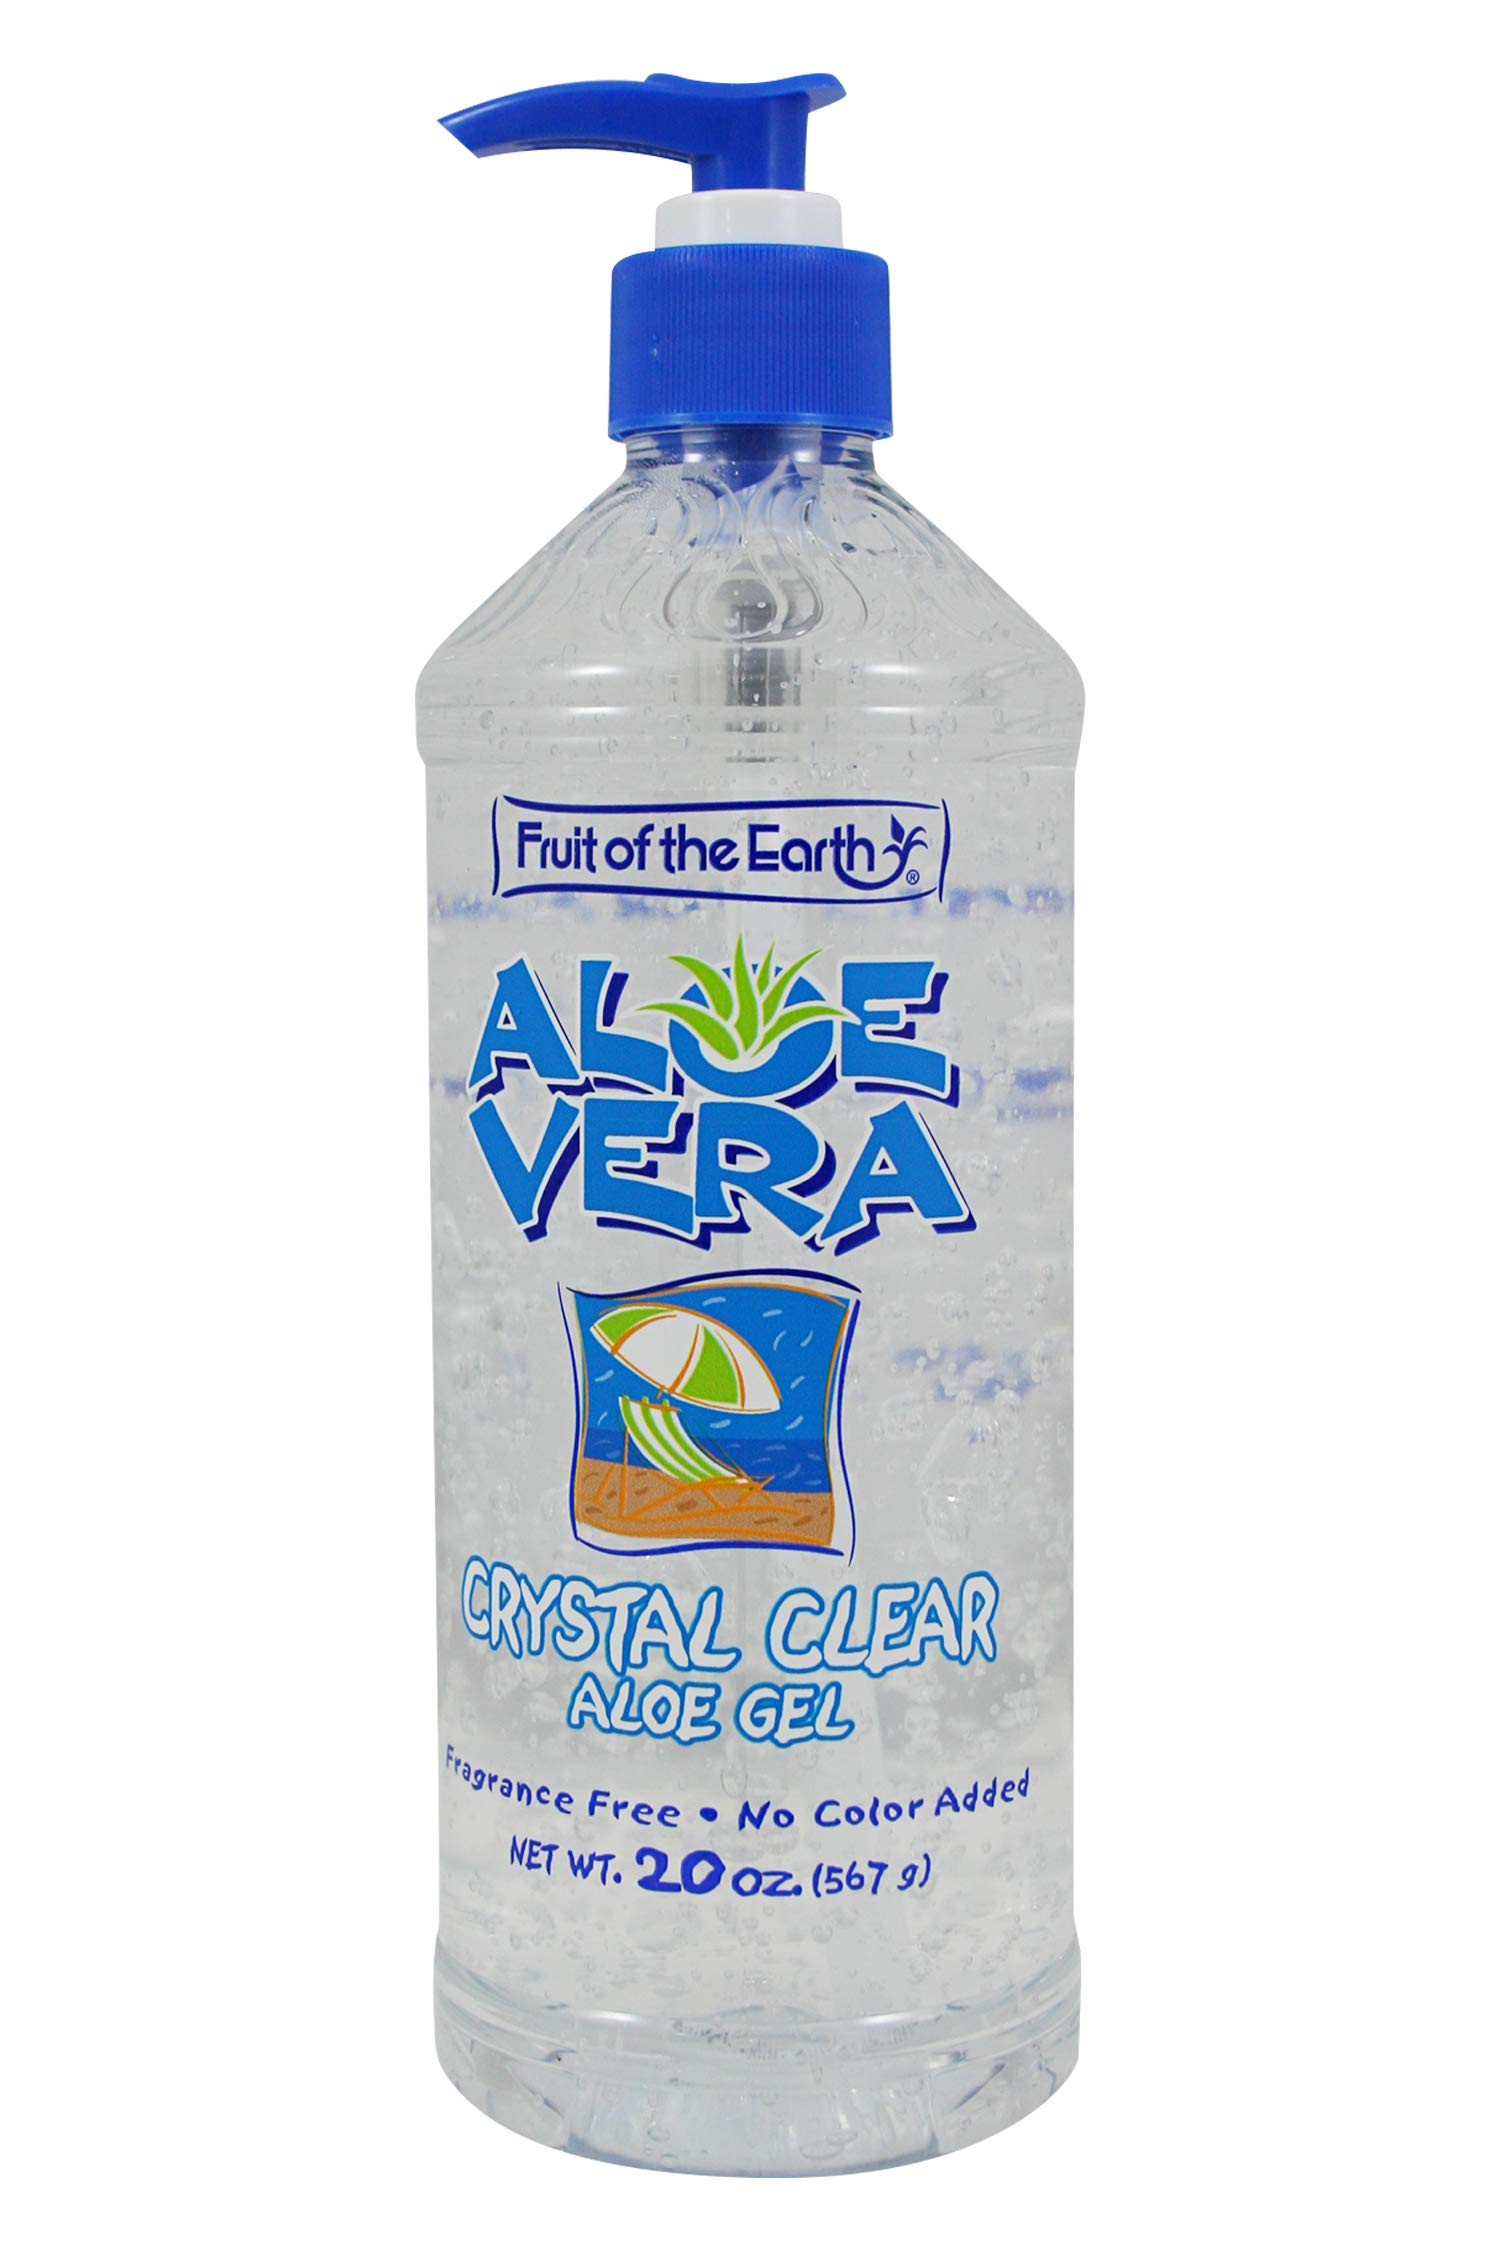 Fruit of the Earth Aloe Vera Crystal Clear Aloe Gel,20 oz (Pack of 3) by Fruit of the Earth